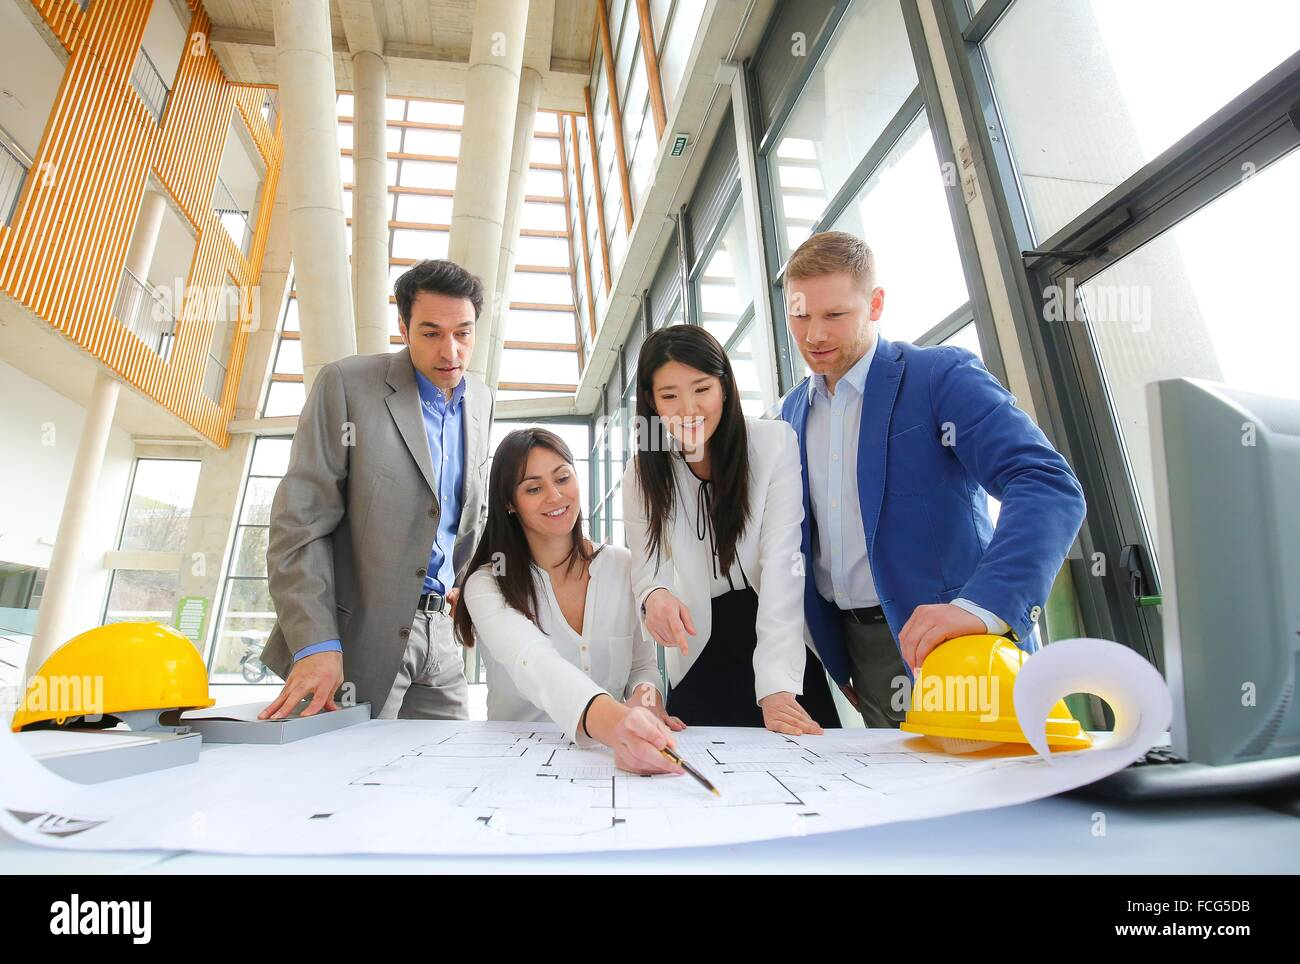 Architects looking at blueprints - Stock Image